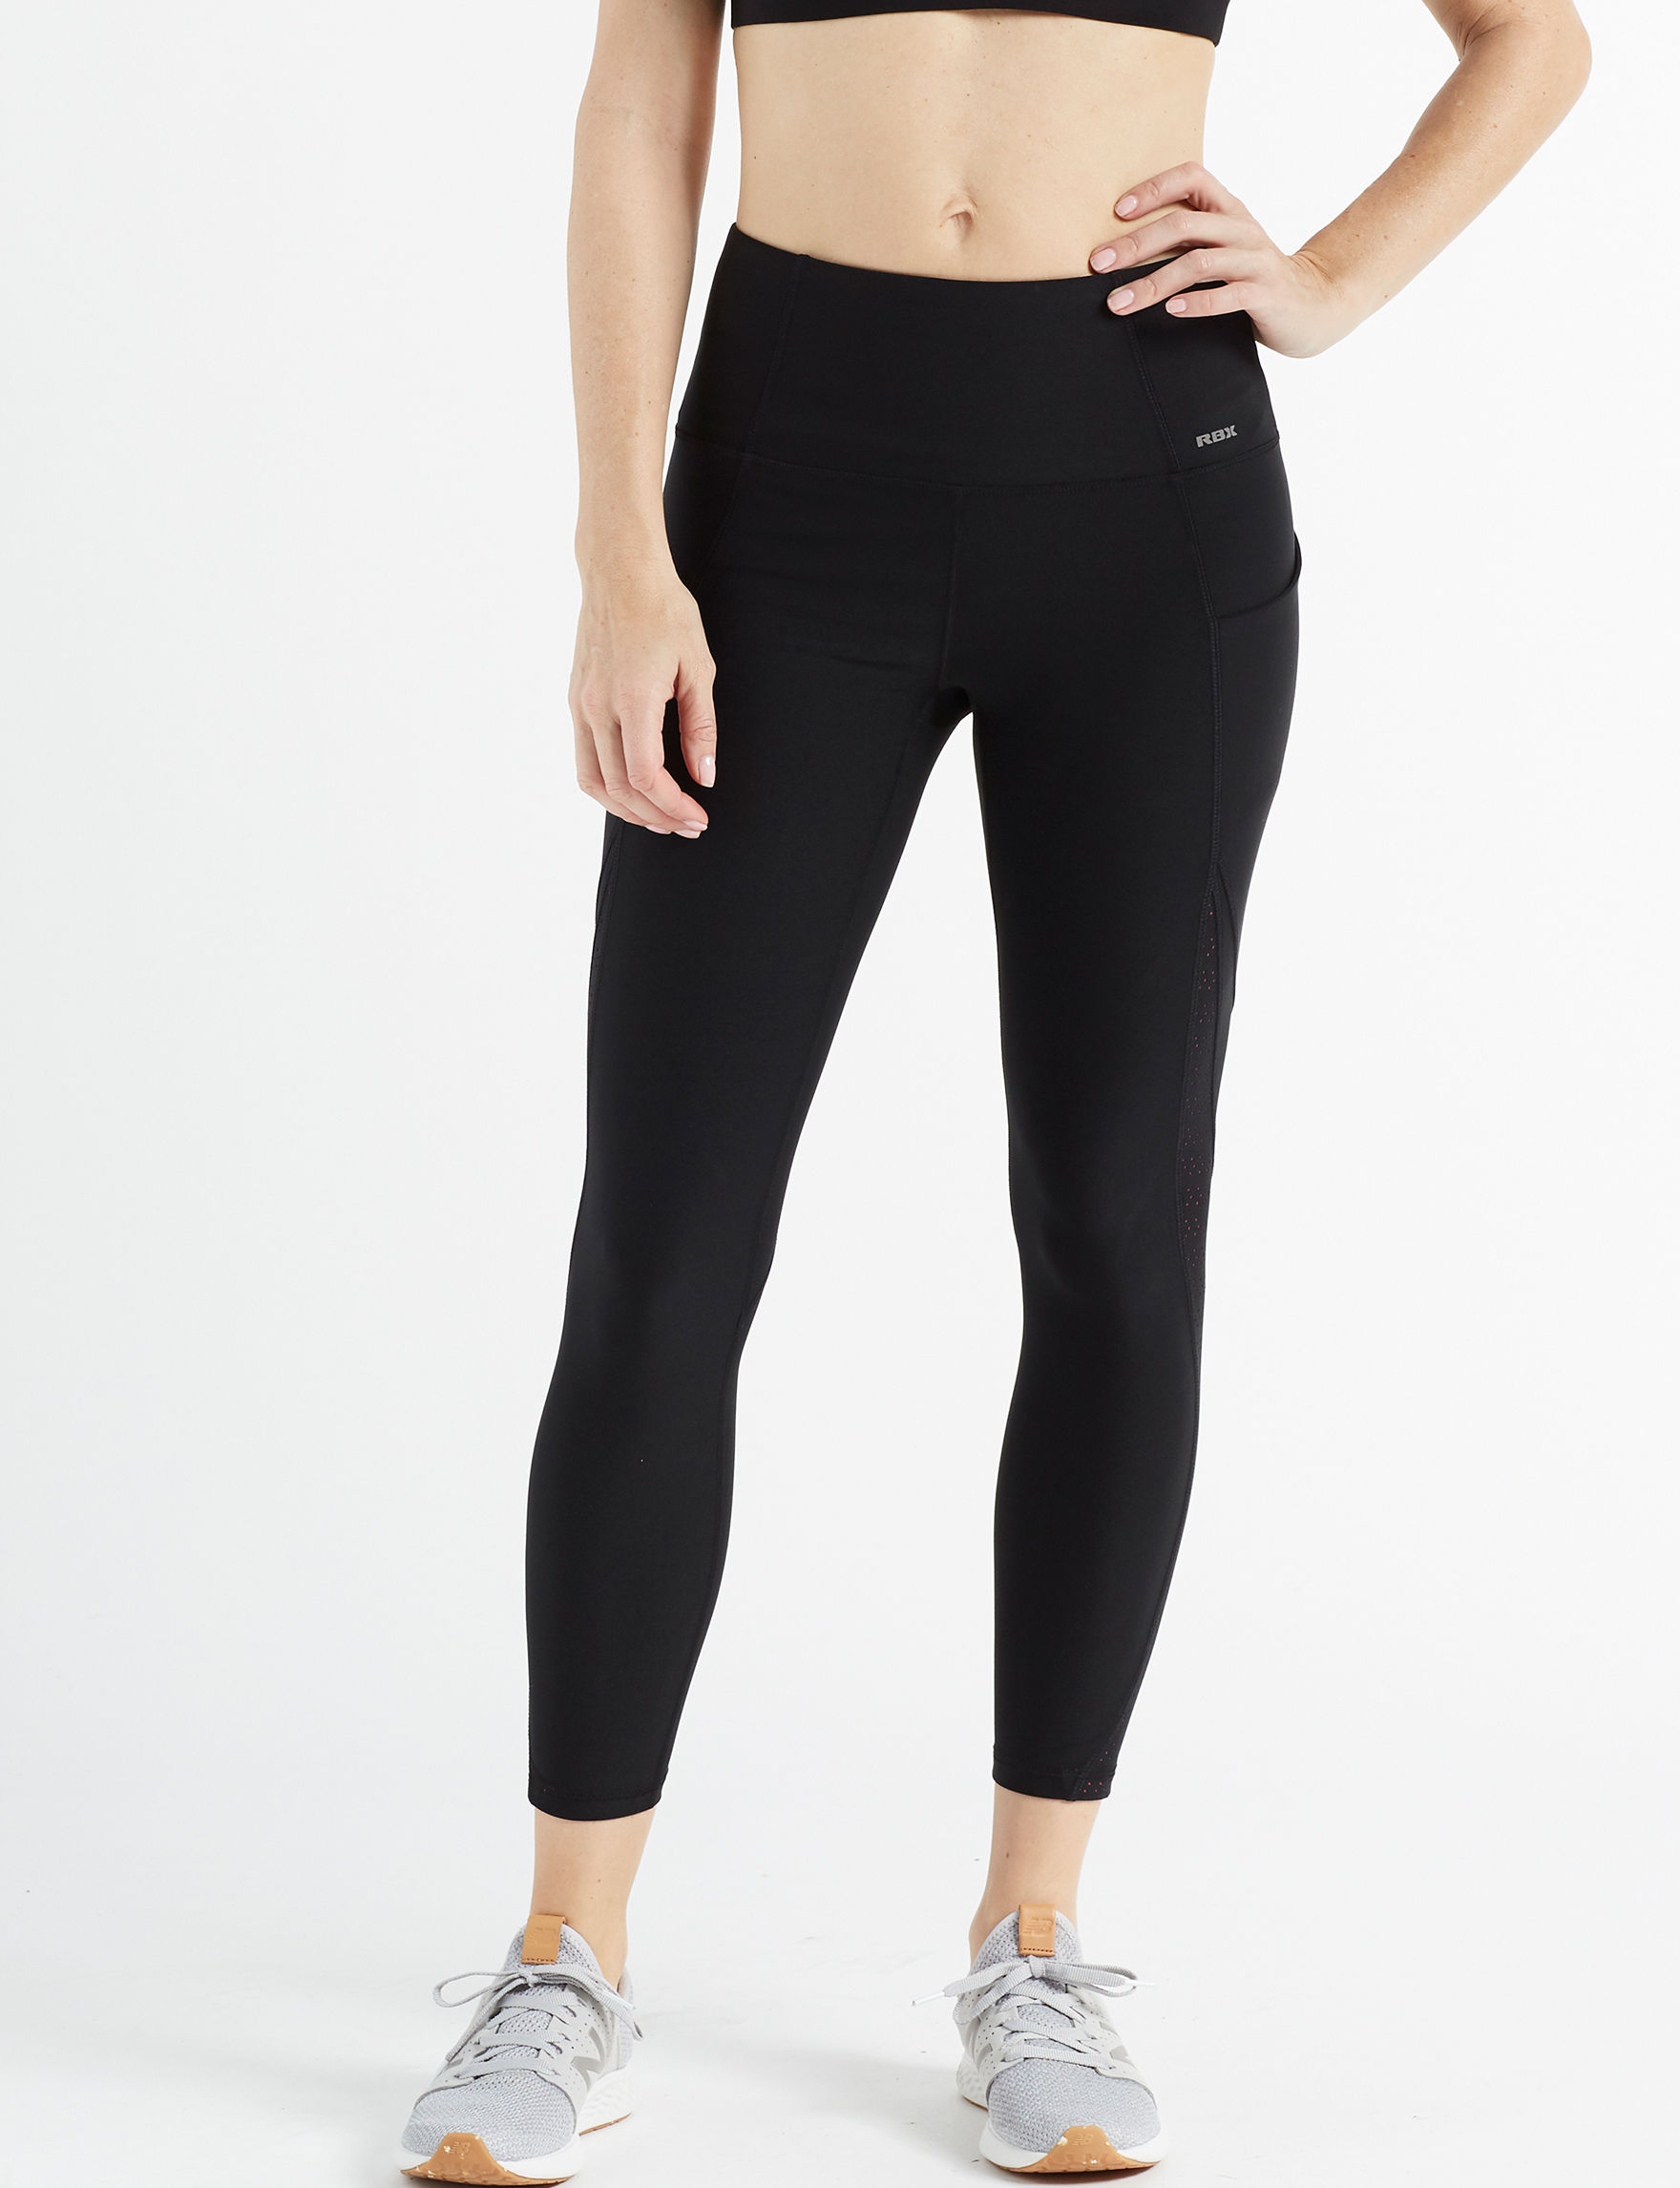 RBX Black Leggings